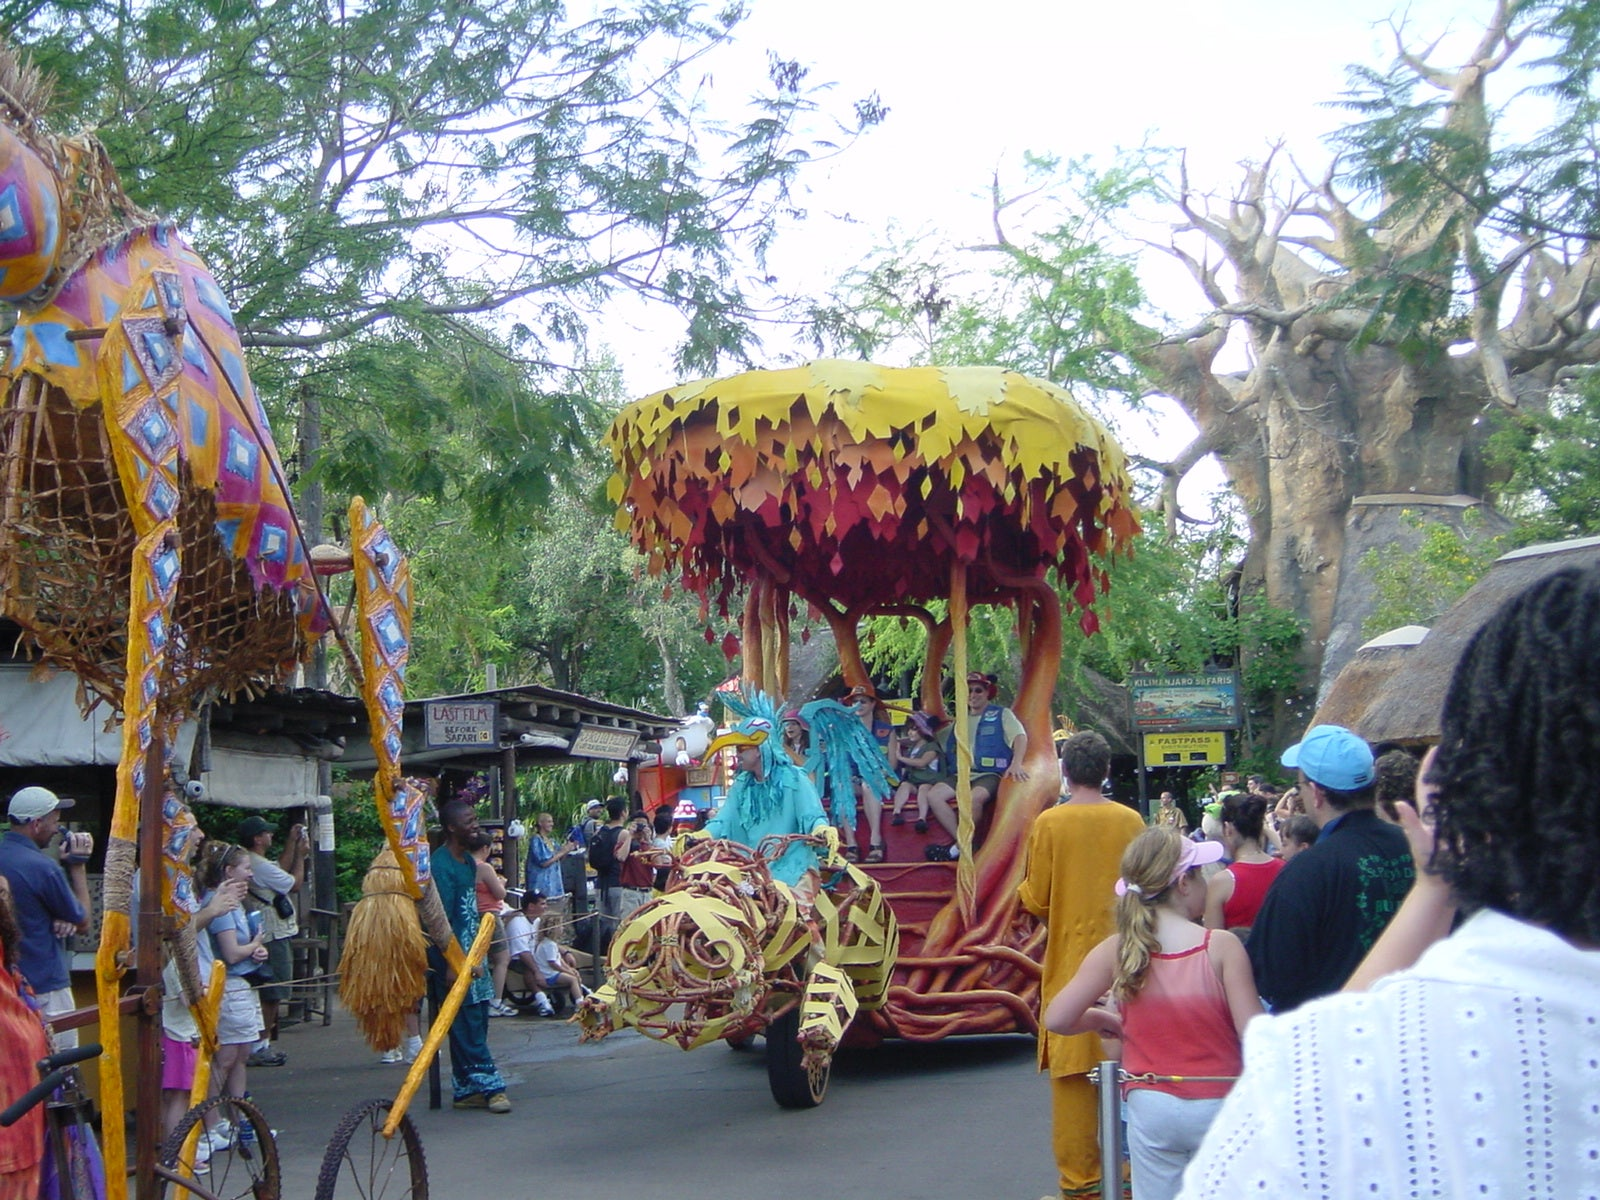 Amarillo en Disney Animal Kingdom